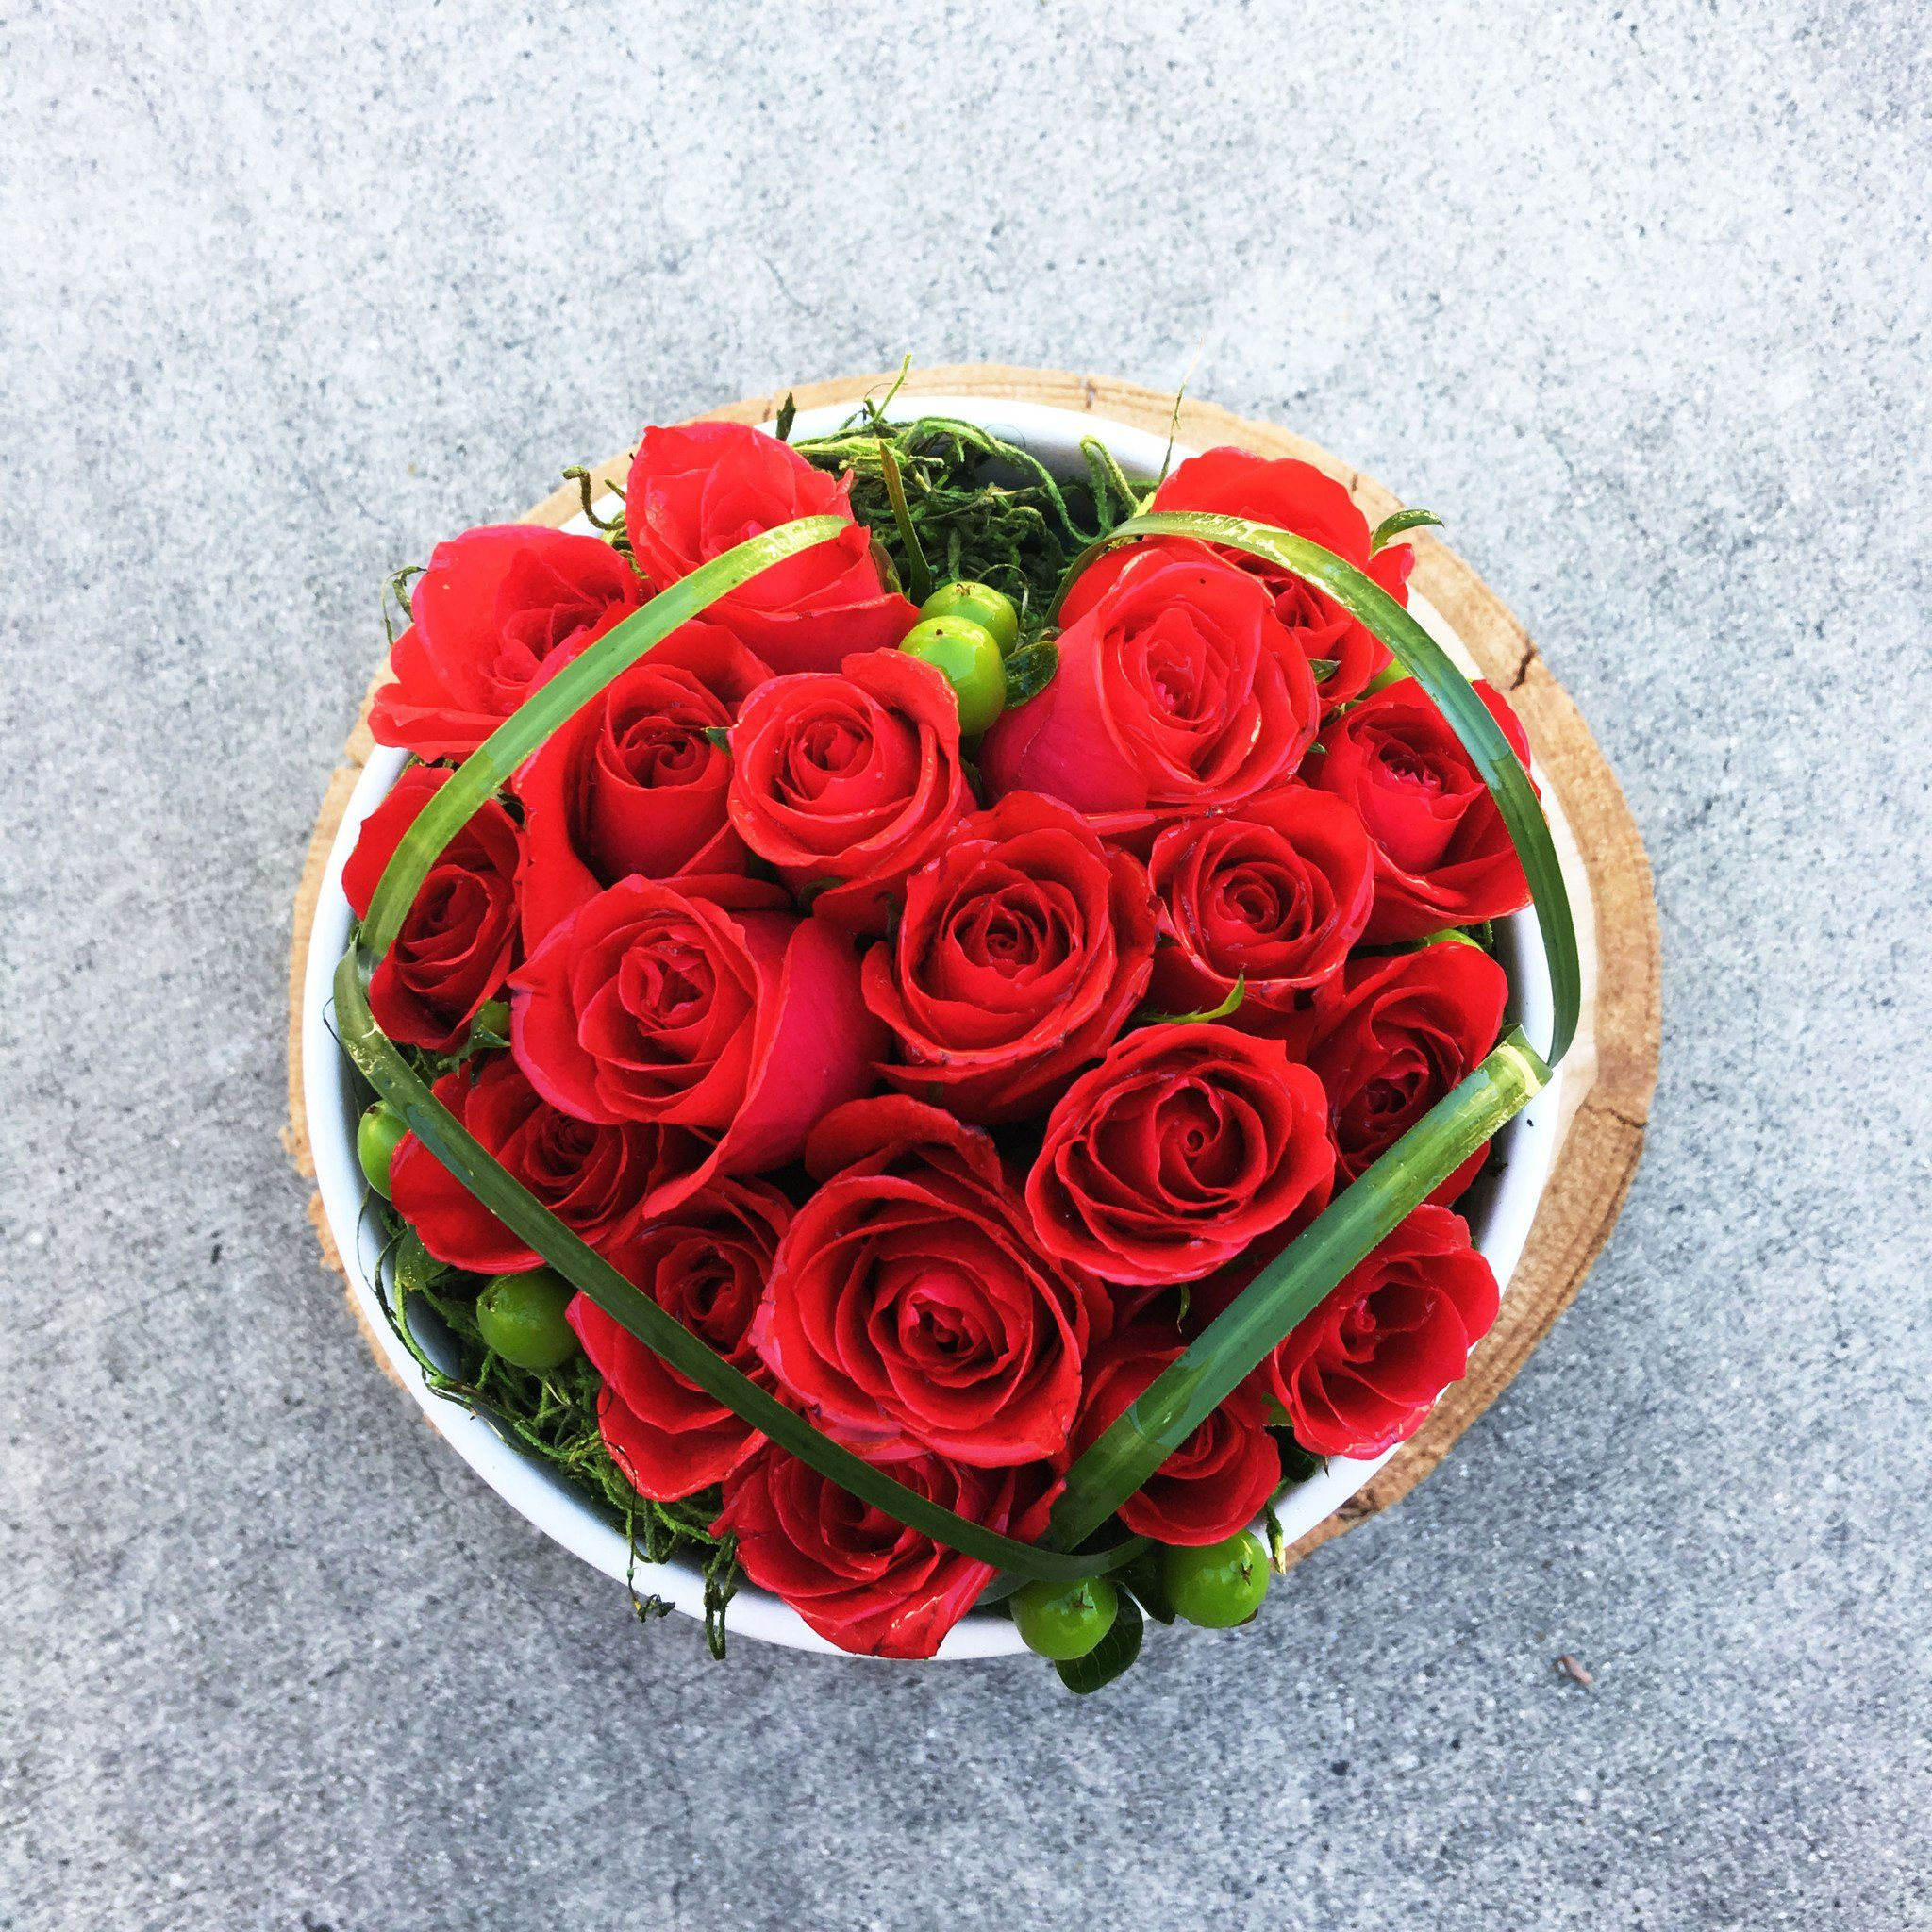 Red Rose Arrangements Flower Arrangement Ideas Heart Shaped Red